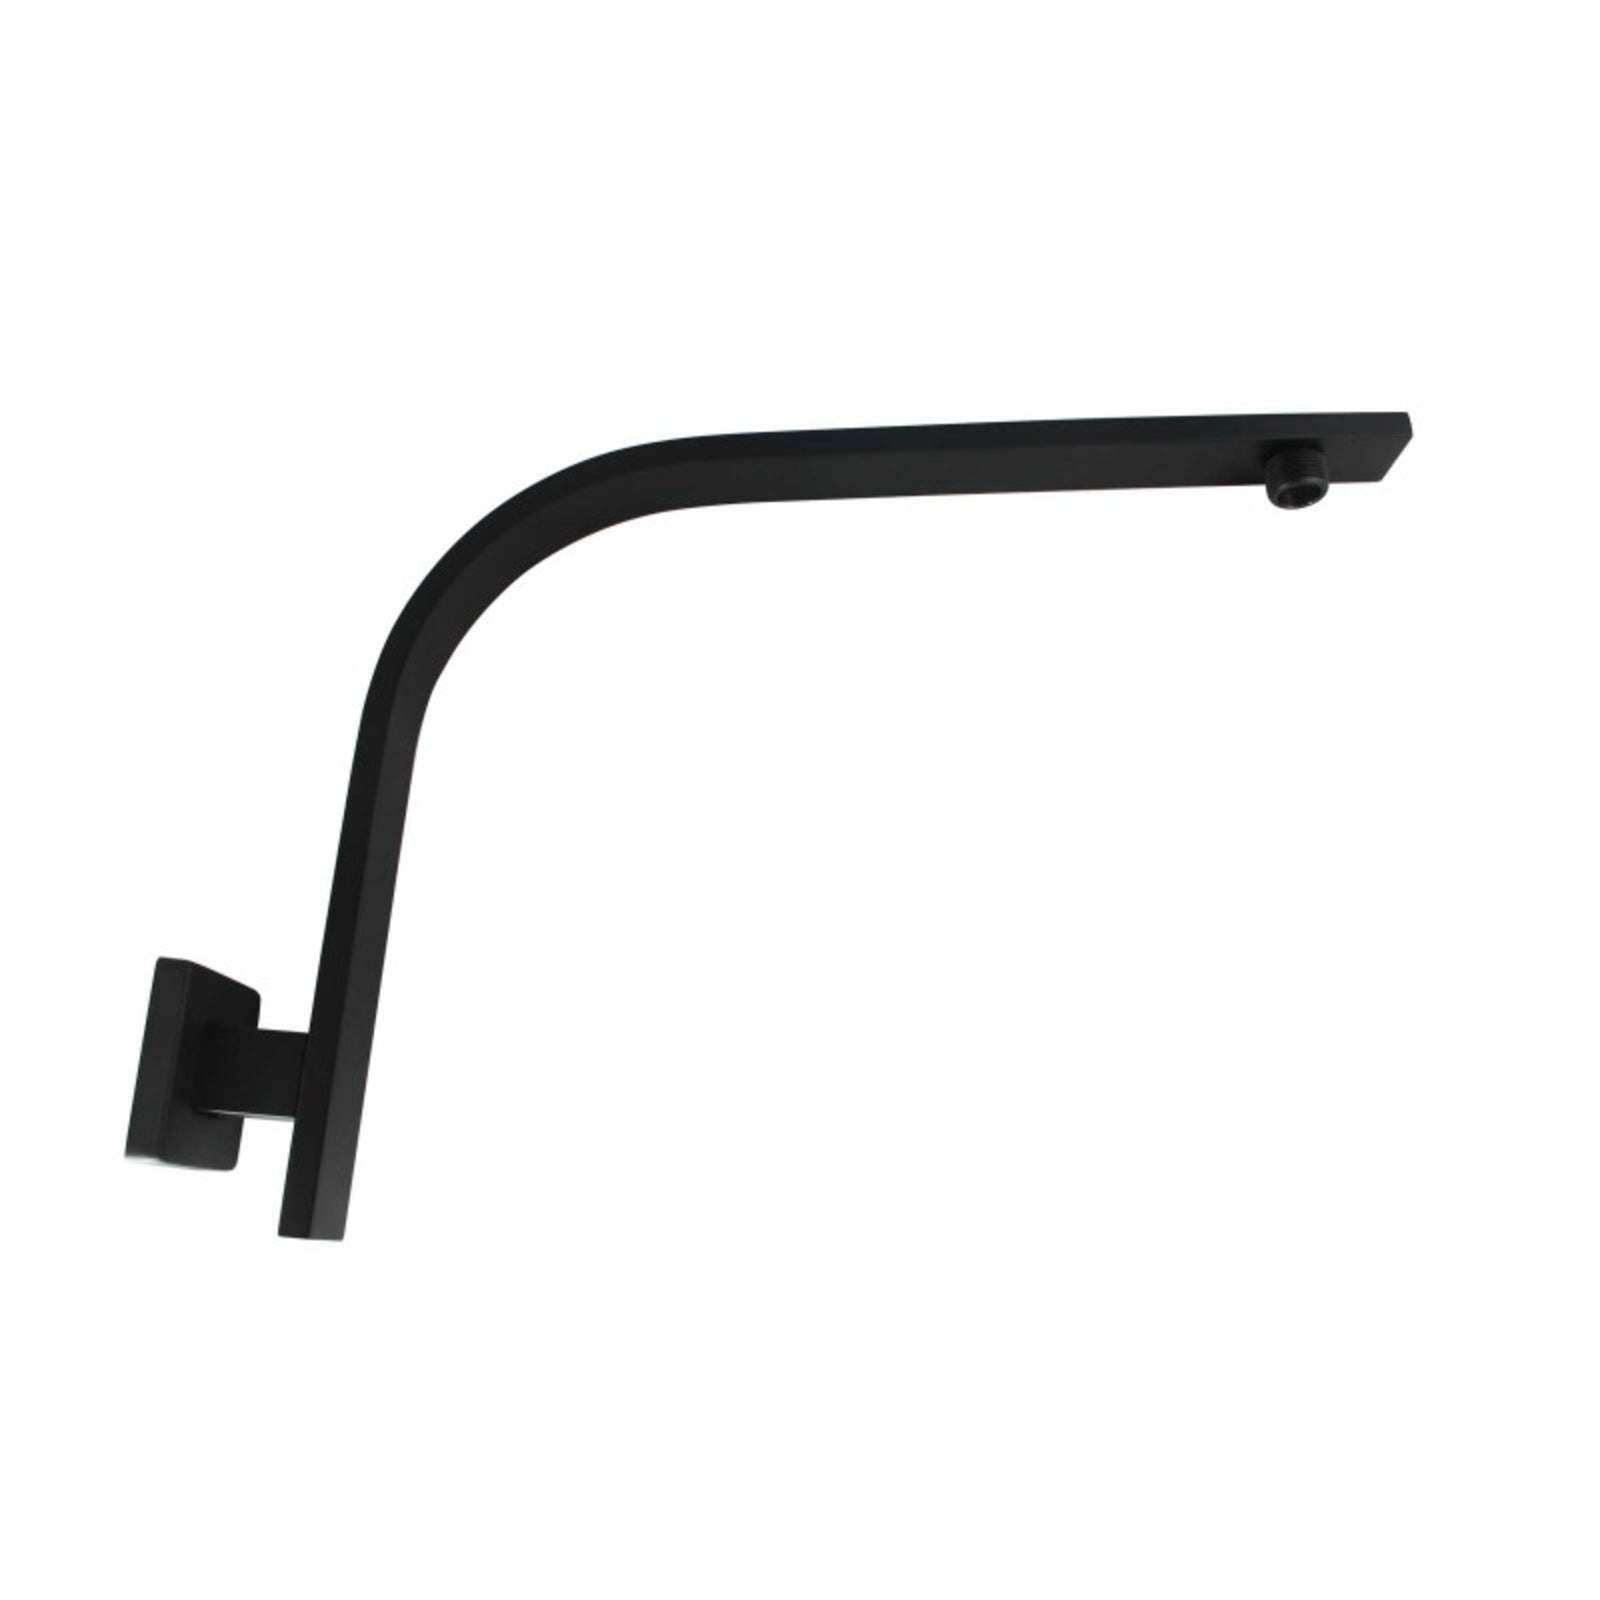 Cavallo Matte Black Gooseneck Wall Mounted Shower Arm